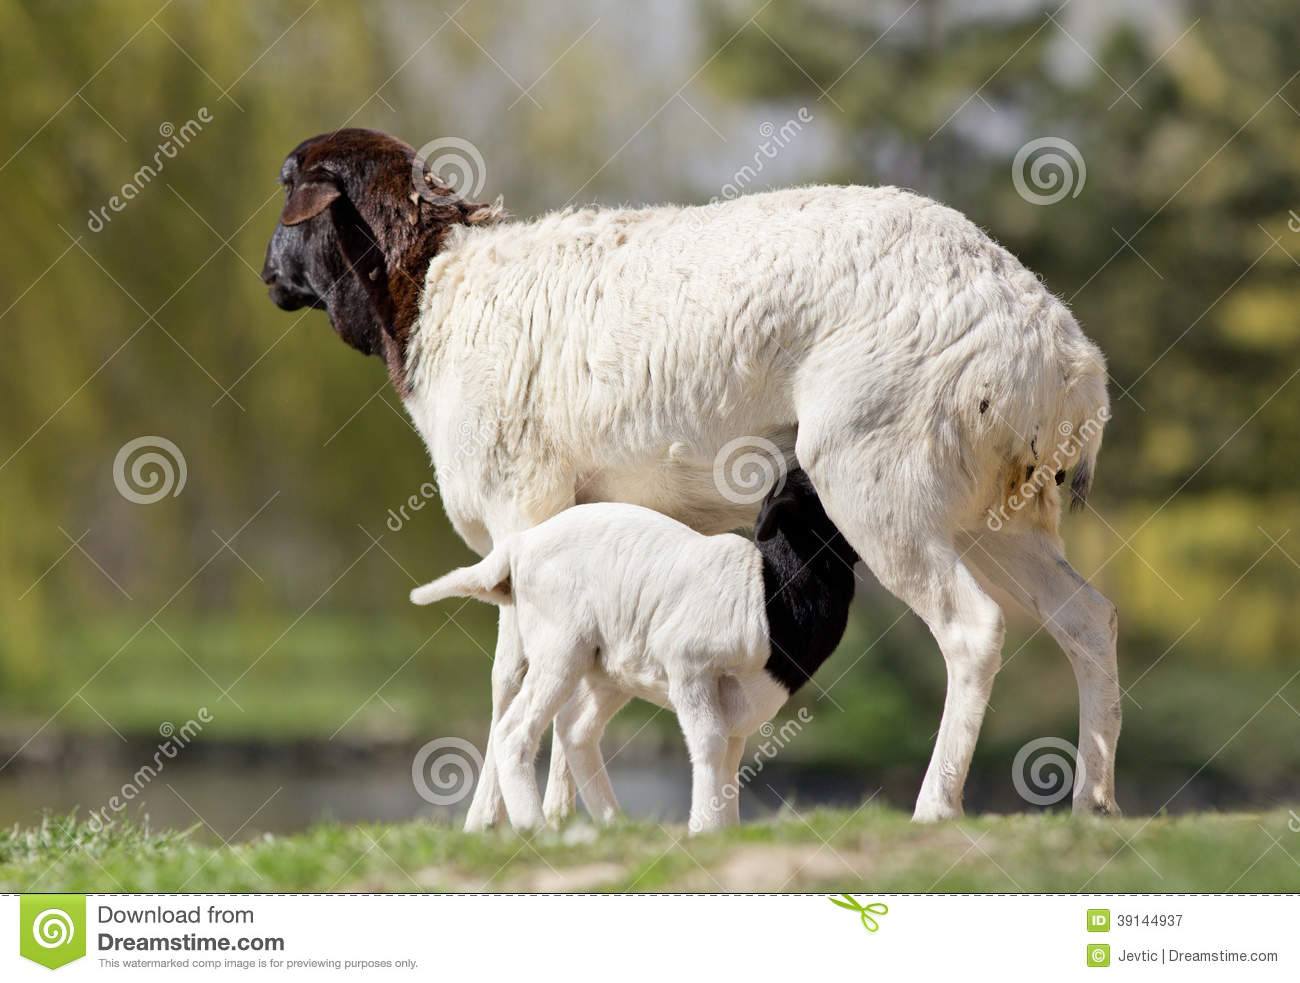 Royalty Free Stock Photography Blackhead Persian Sheep Infant Suckling Milk Standing Pose Image39144937 on Sounds Of Farm Animals